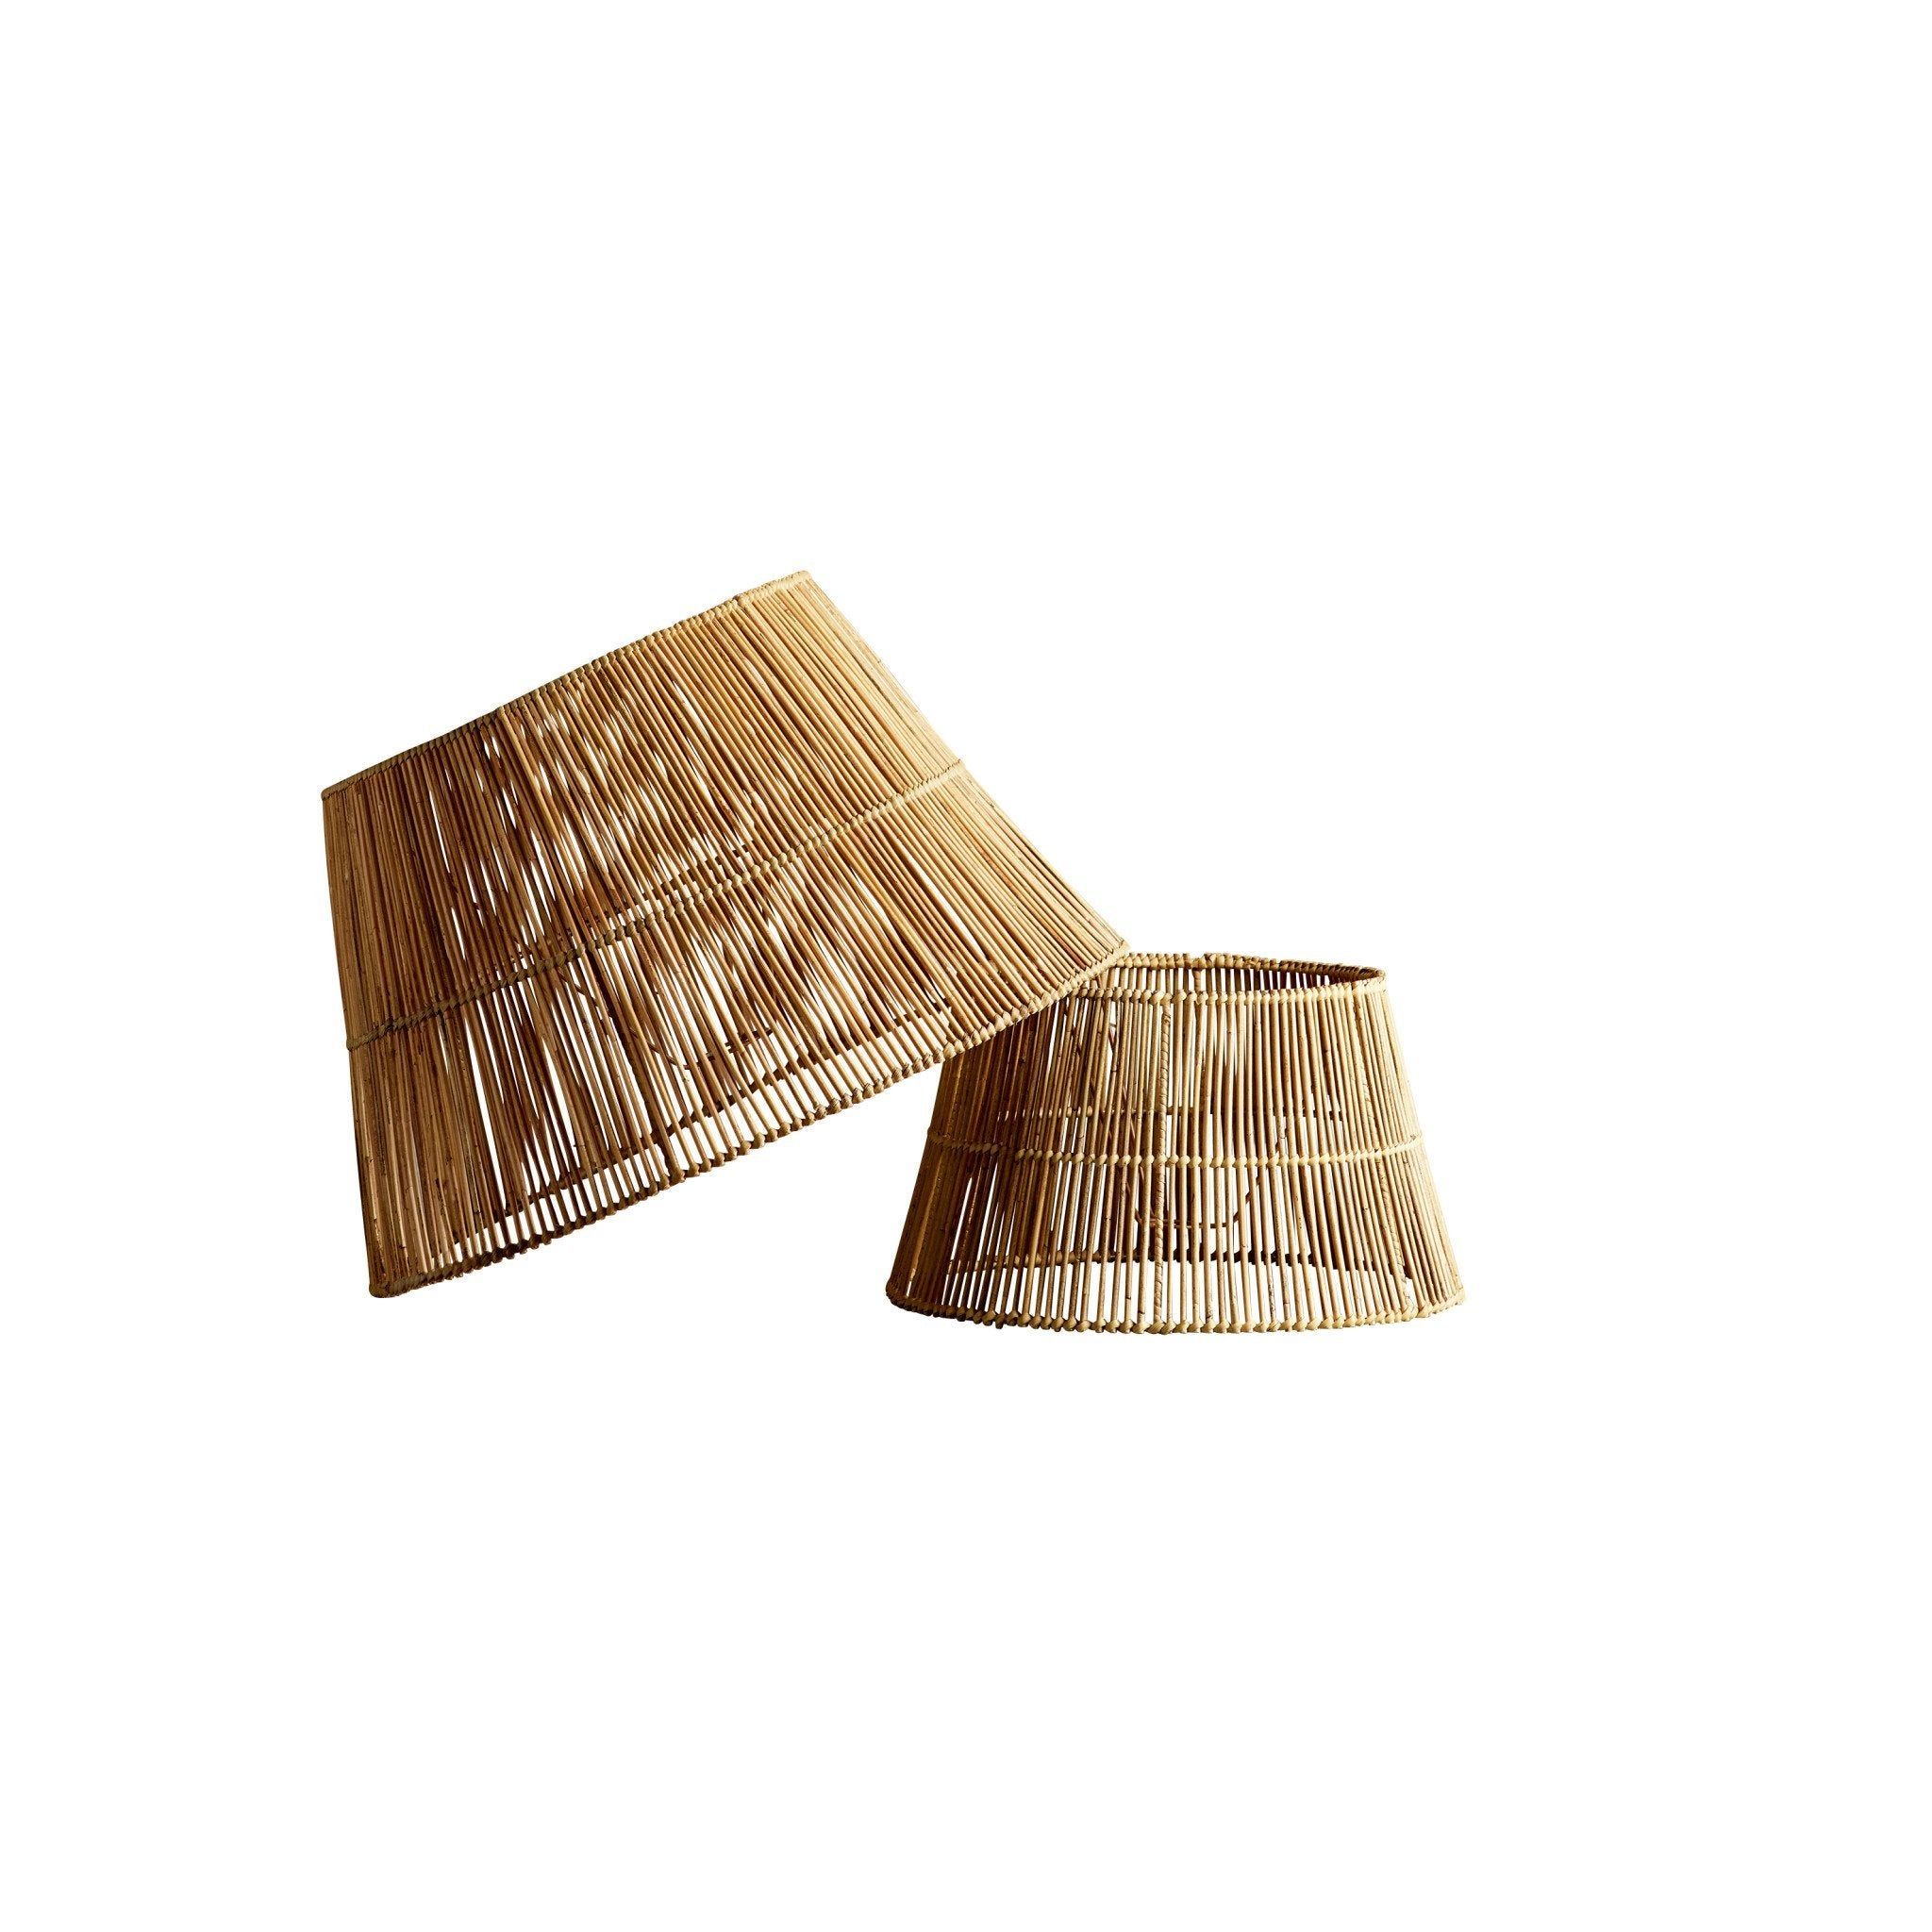 extra large rattan lampshade leaning against medium rattan lampshade